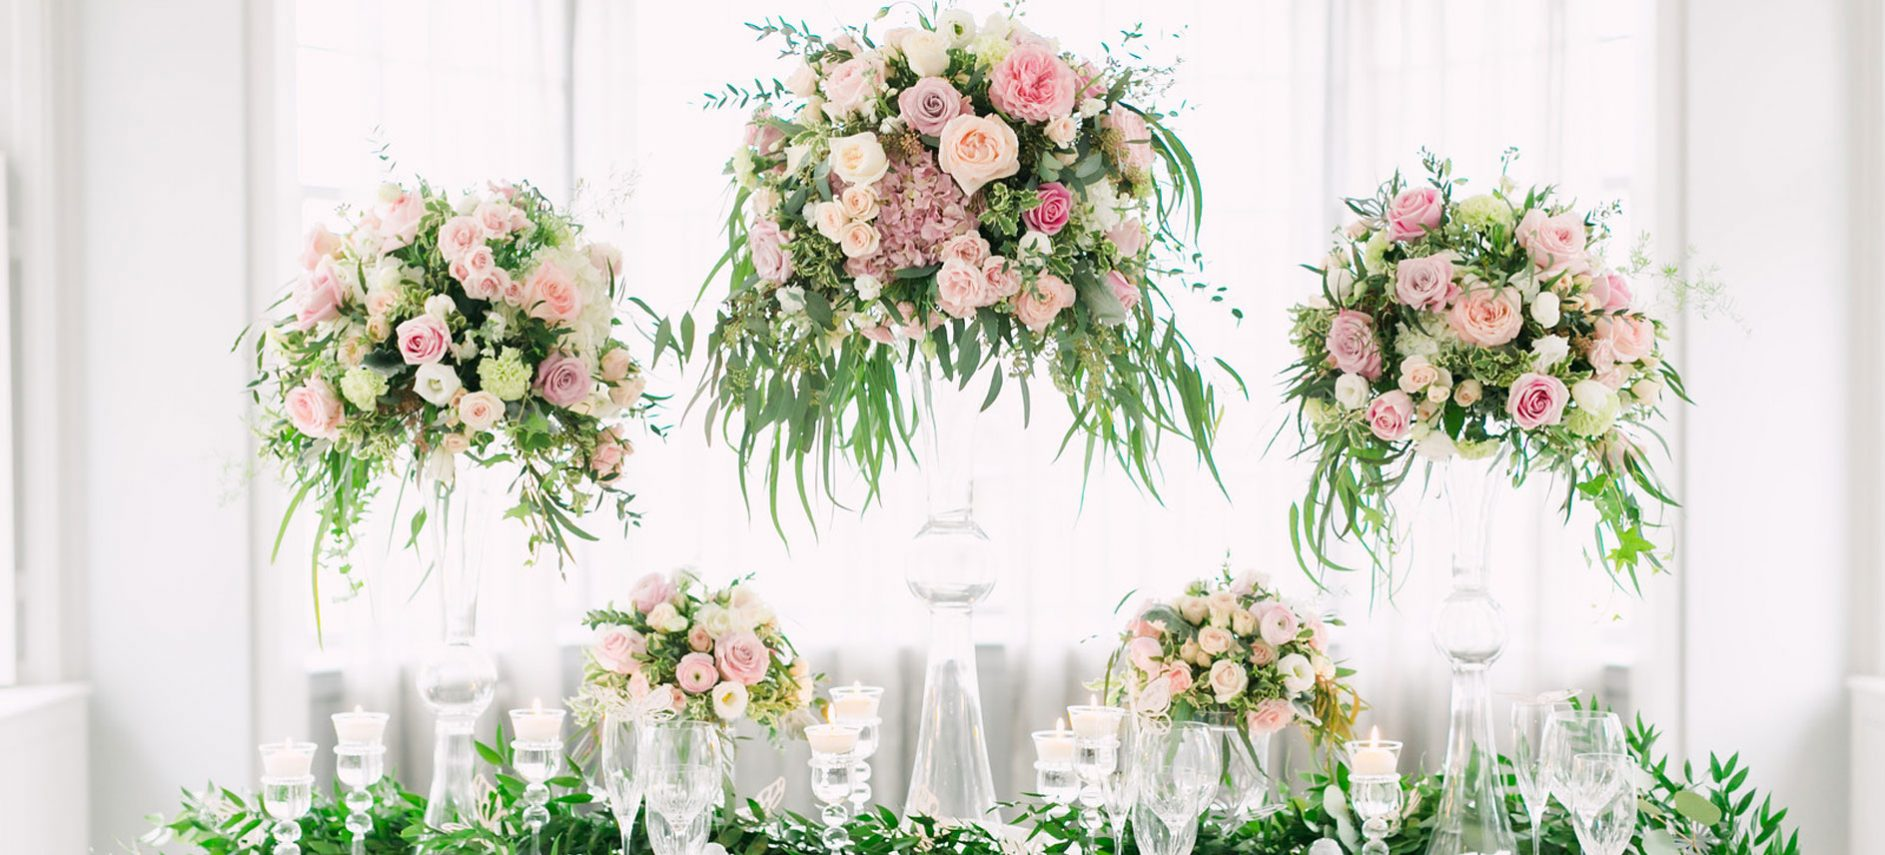 Wedding decorations toronto flowers centerpieces wedding decor junglespirit Images